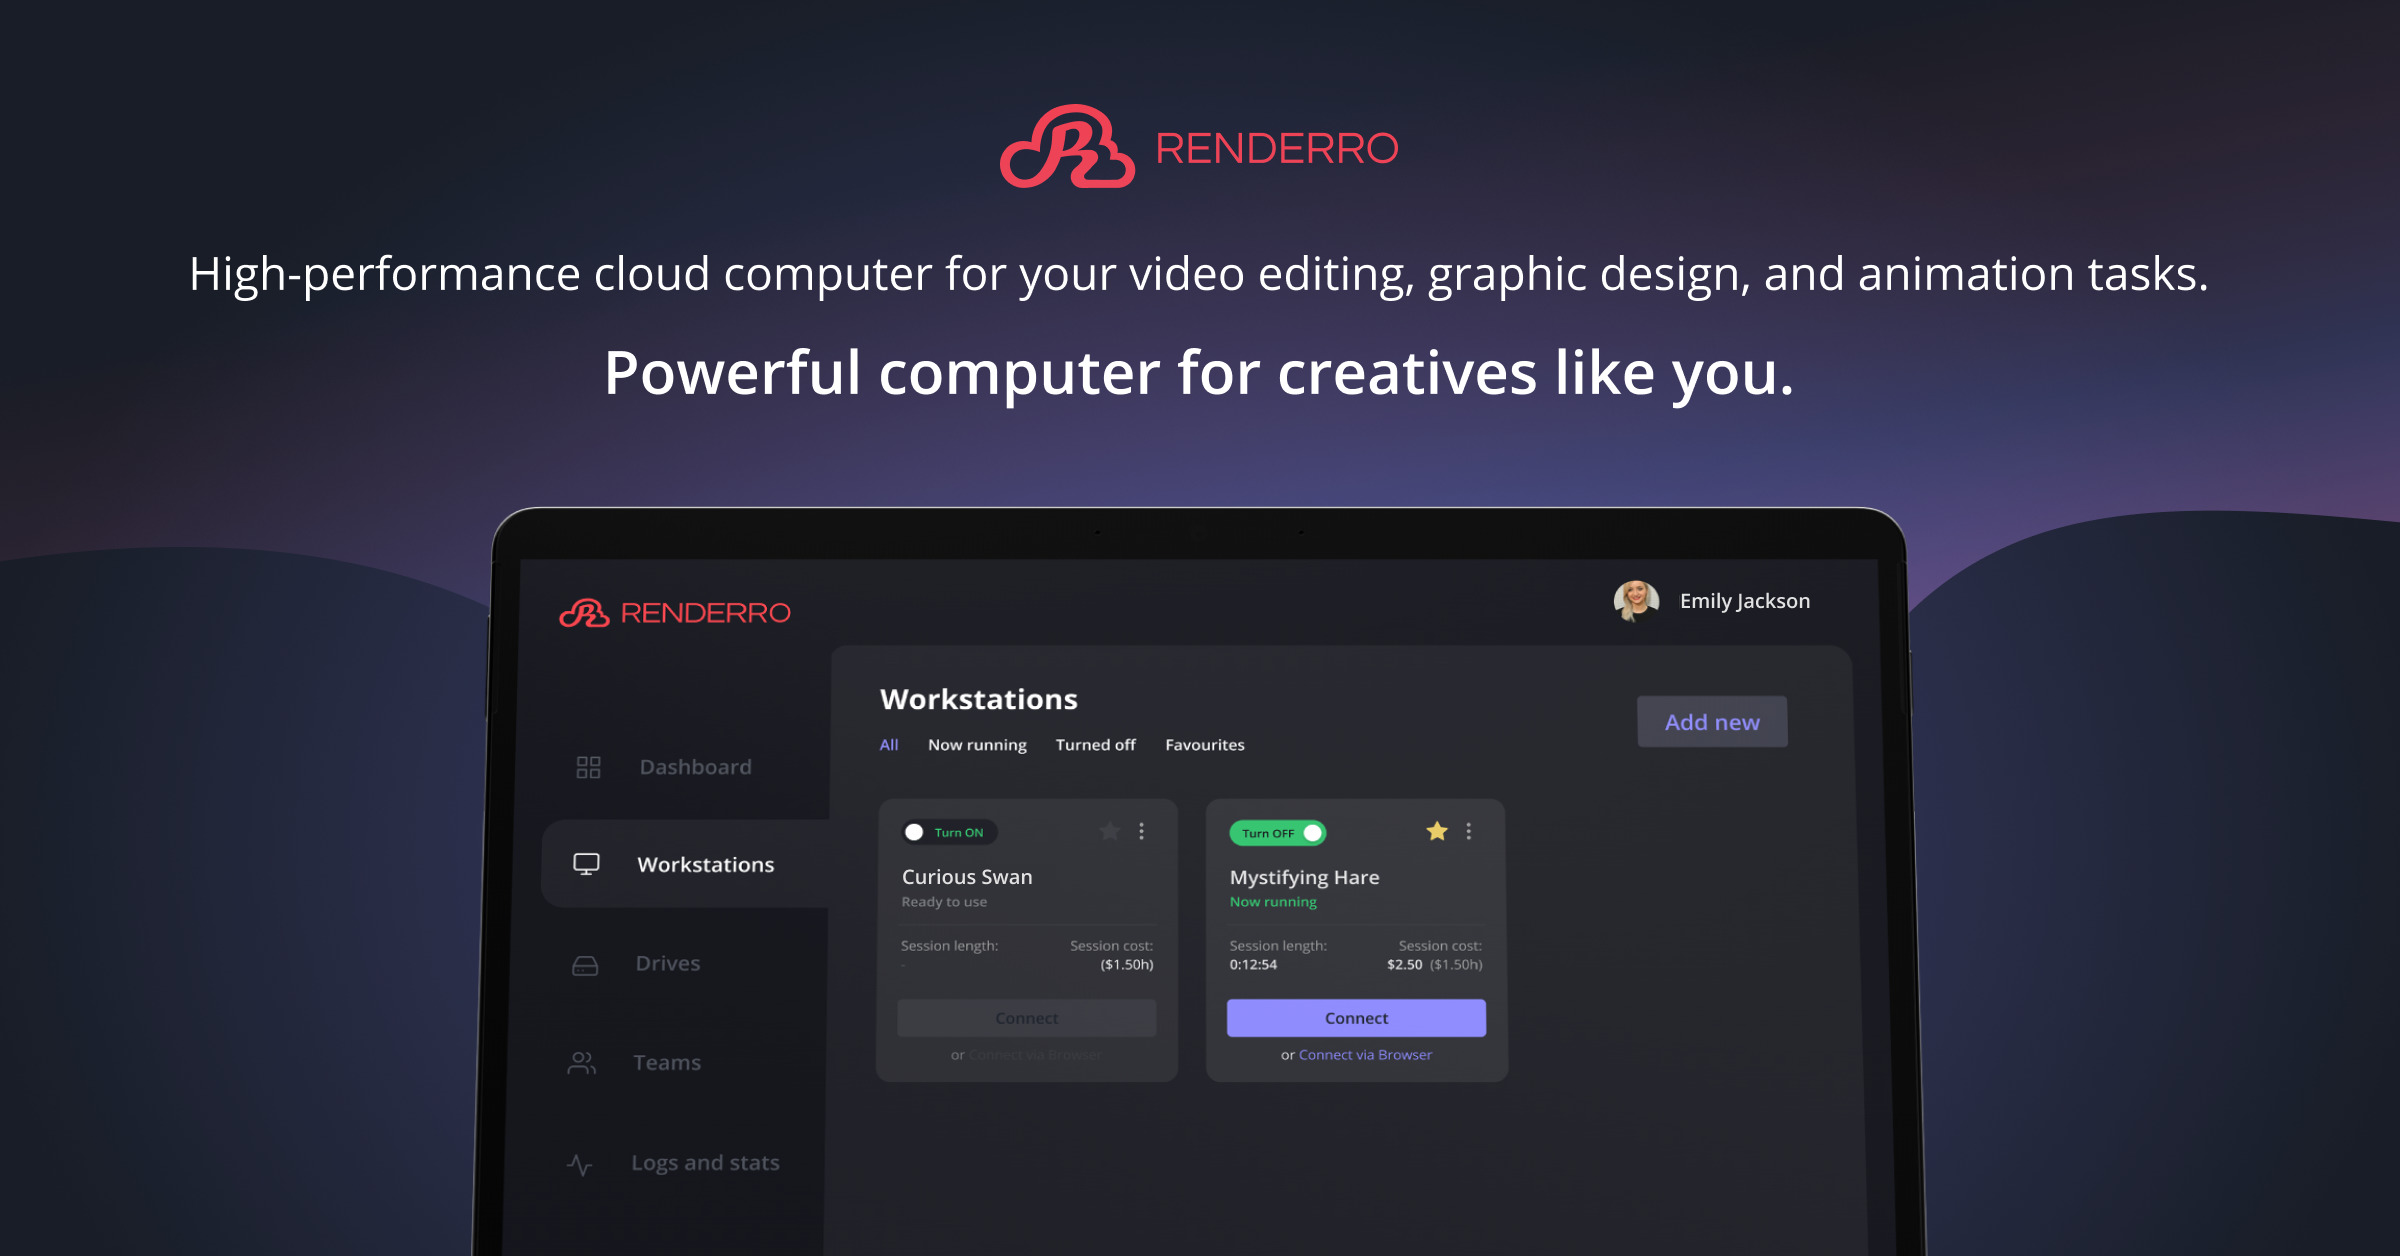 Renderro - powerful cloud computer for your post-production and creative tasks 8